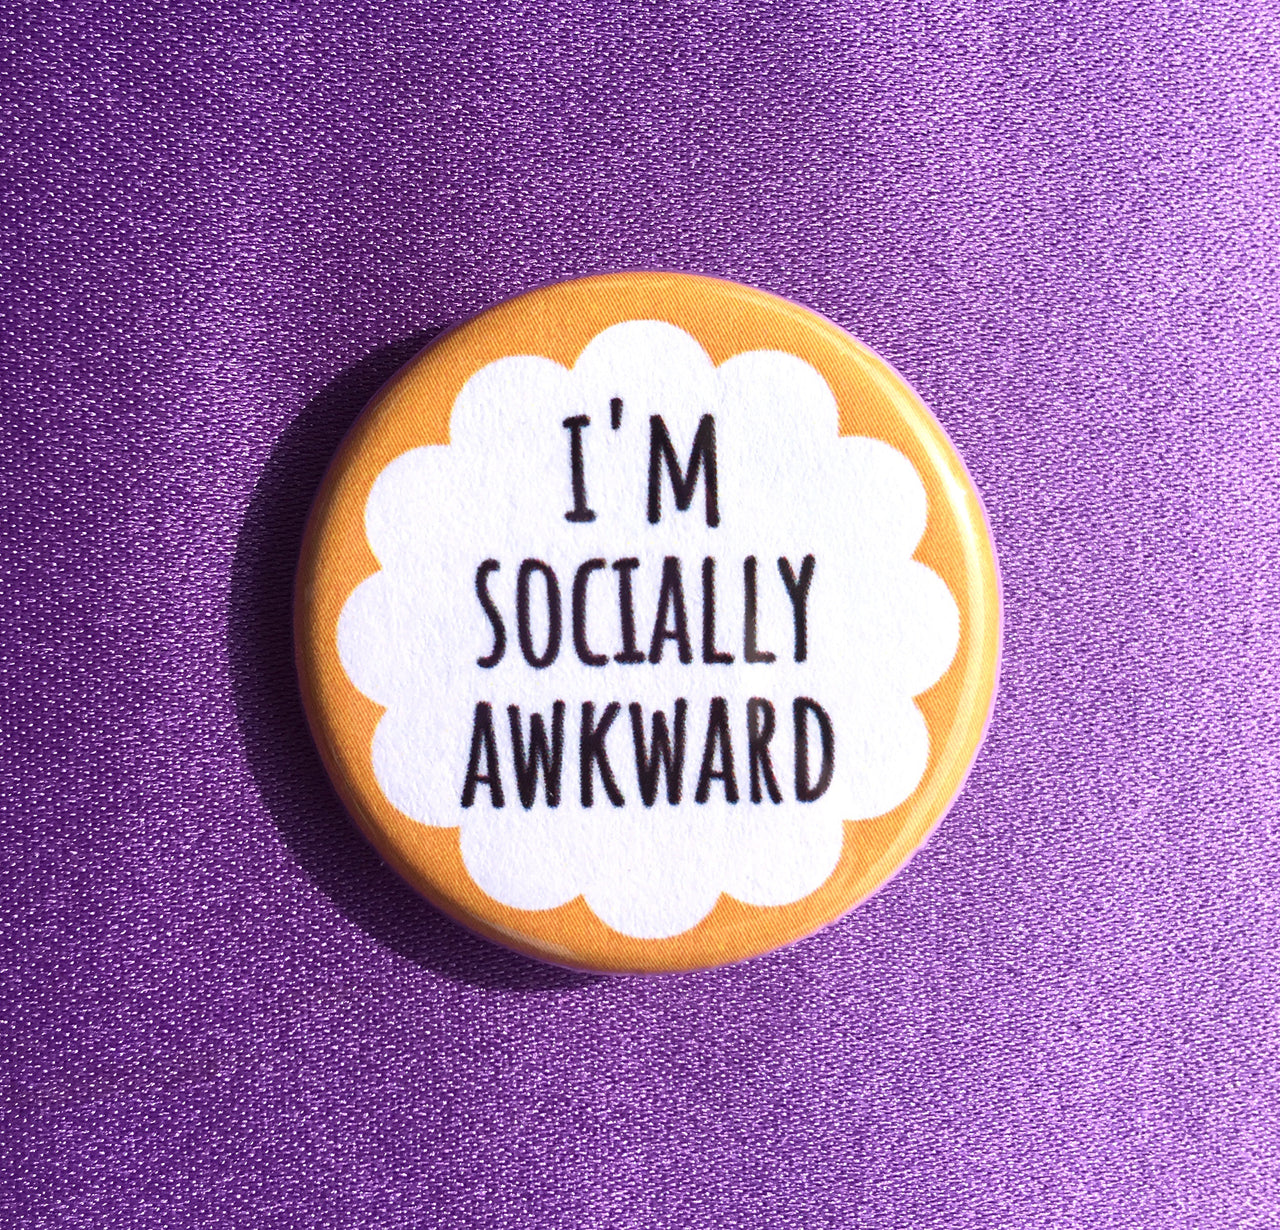 I'm socially awkward - Radical Buttons